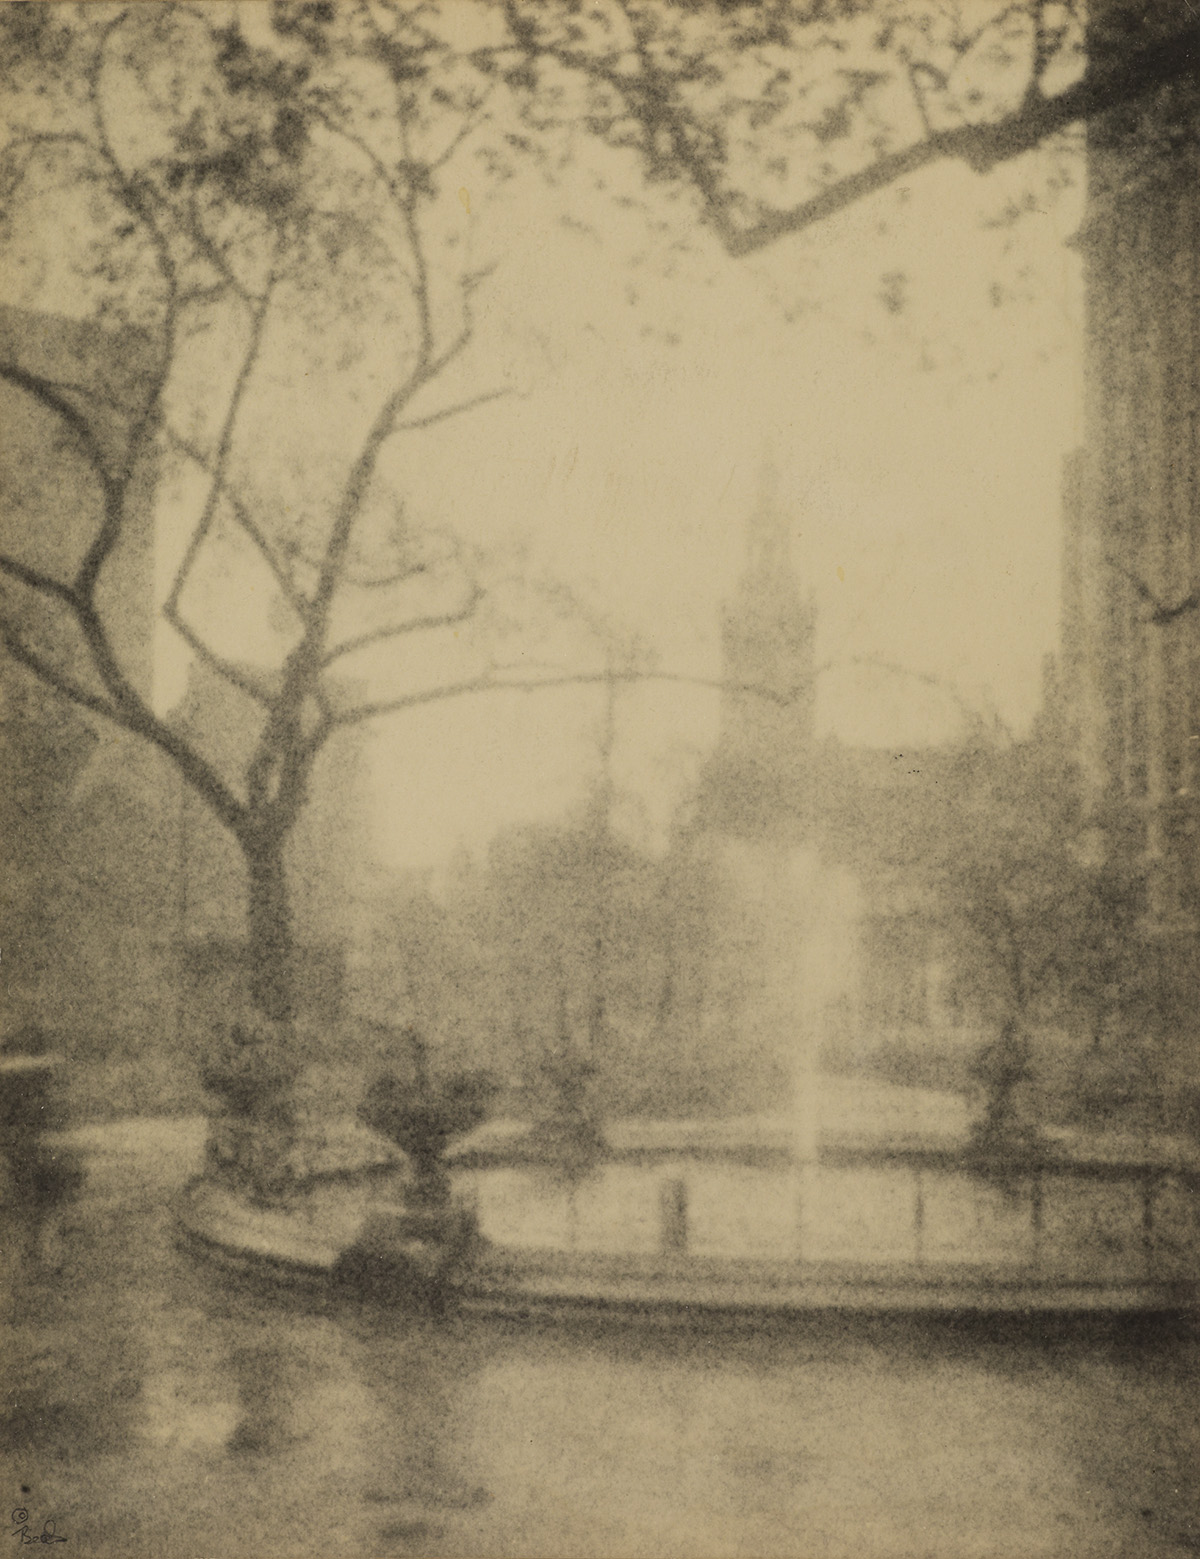 JESSIE-TARBOX-BEALS-(1870-1942)-Madison-Square-at-Dawn-New-Y